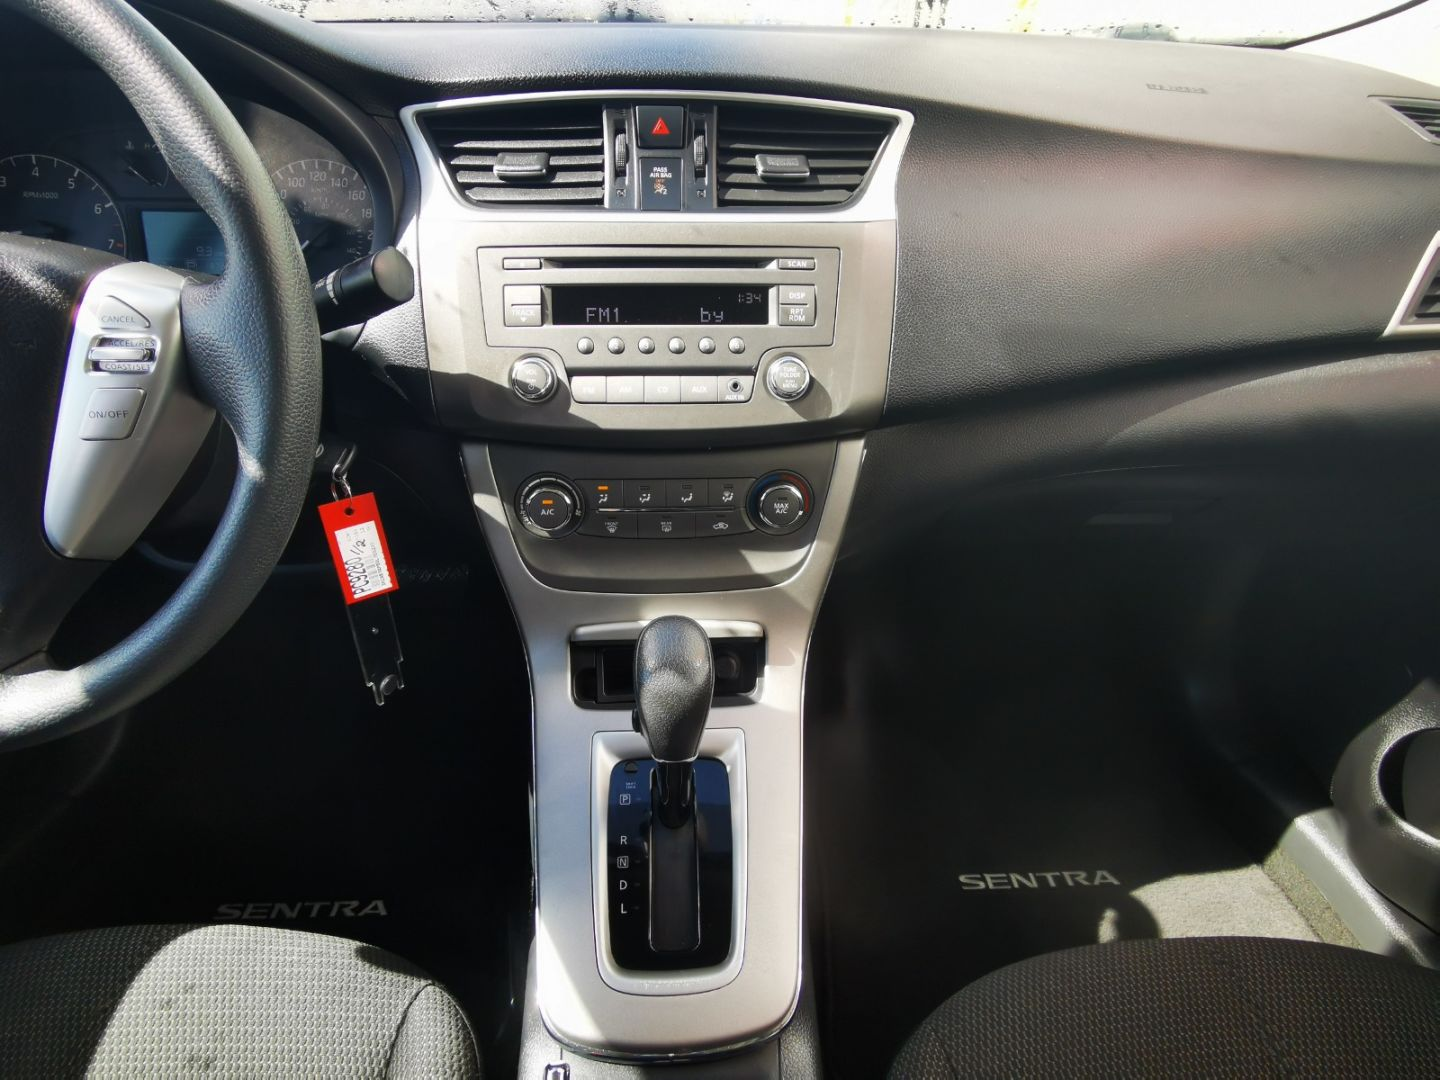 2013 Nissan Sentra S for sale in Edmonton, Alberta